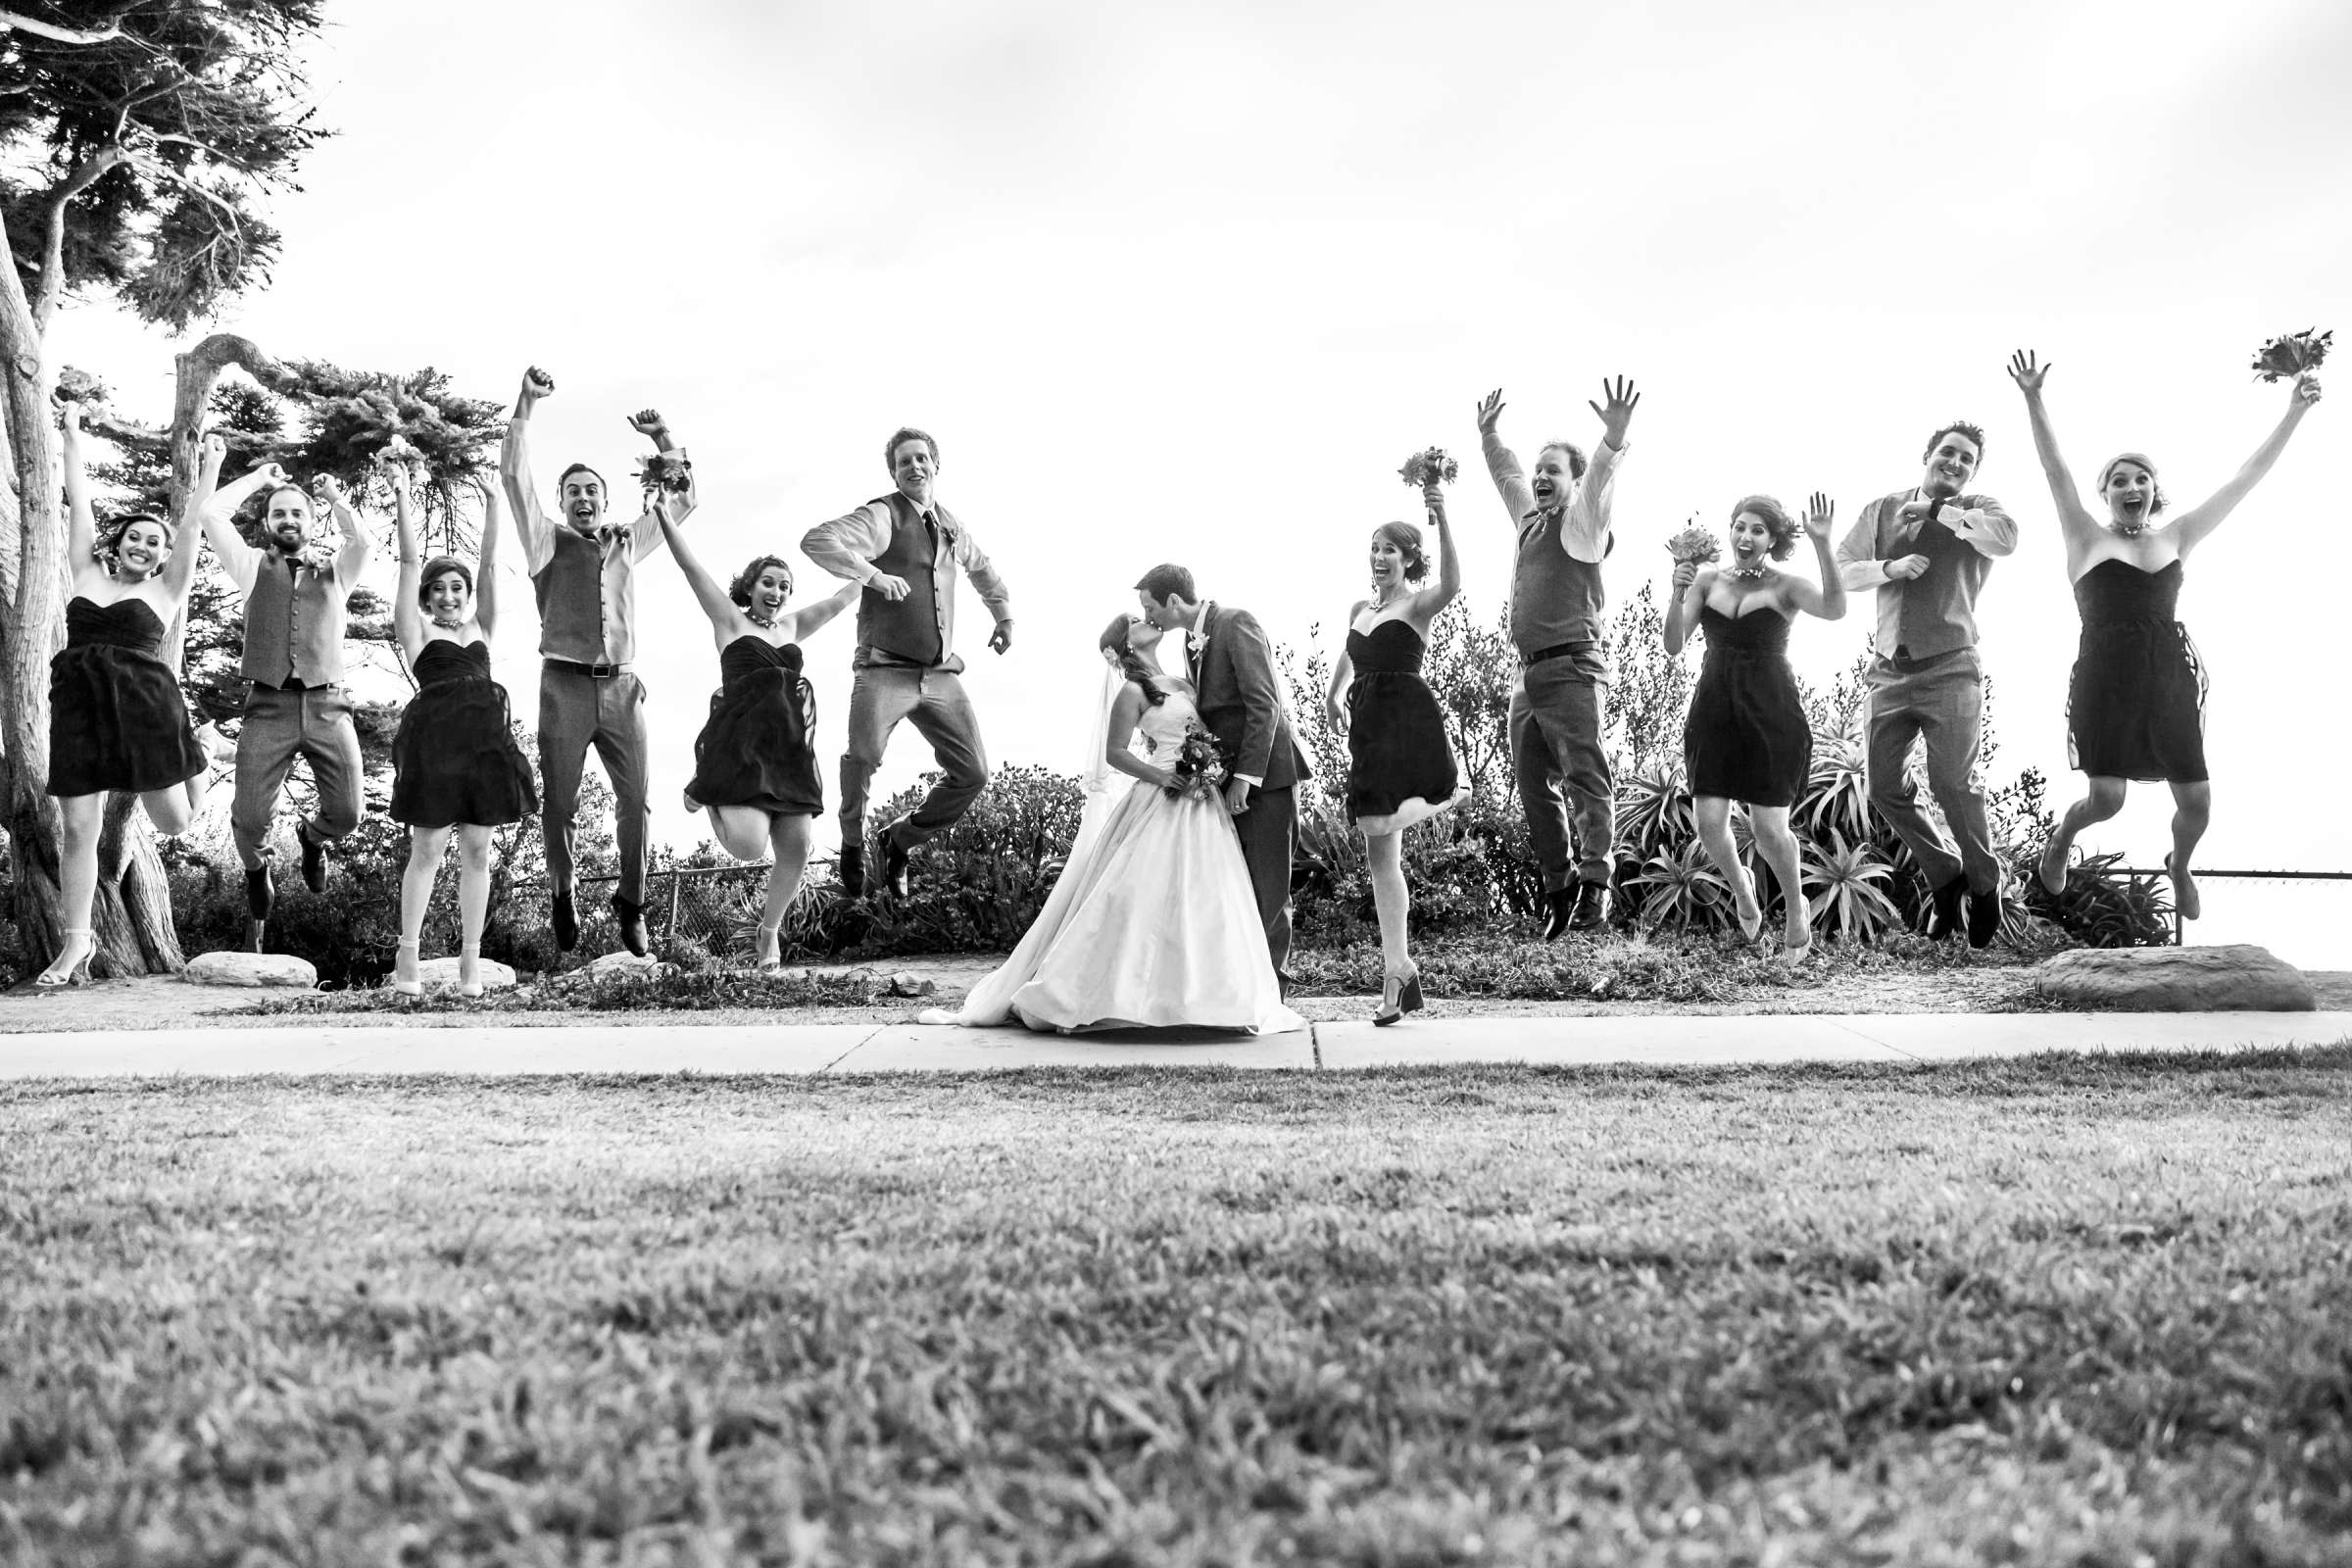 Martin Johnson House Wedding, Jillian and Adam Wedding Photo #8 by True Photography